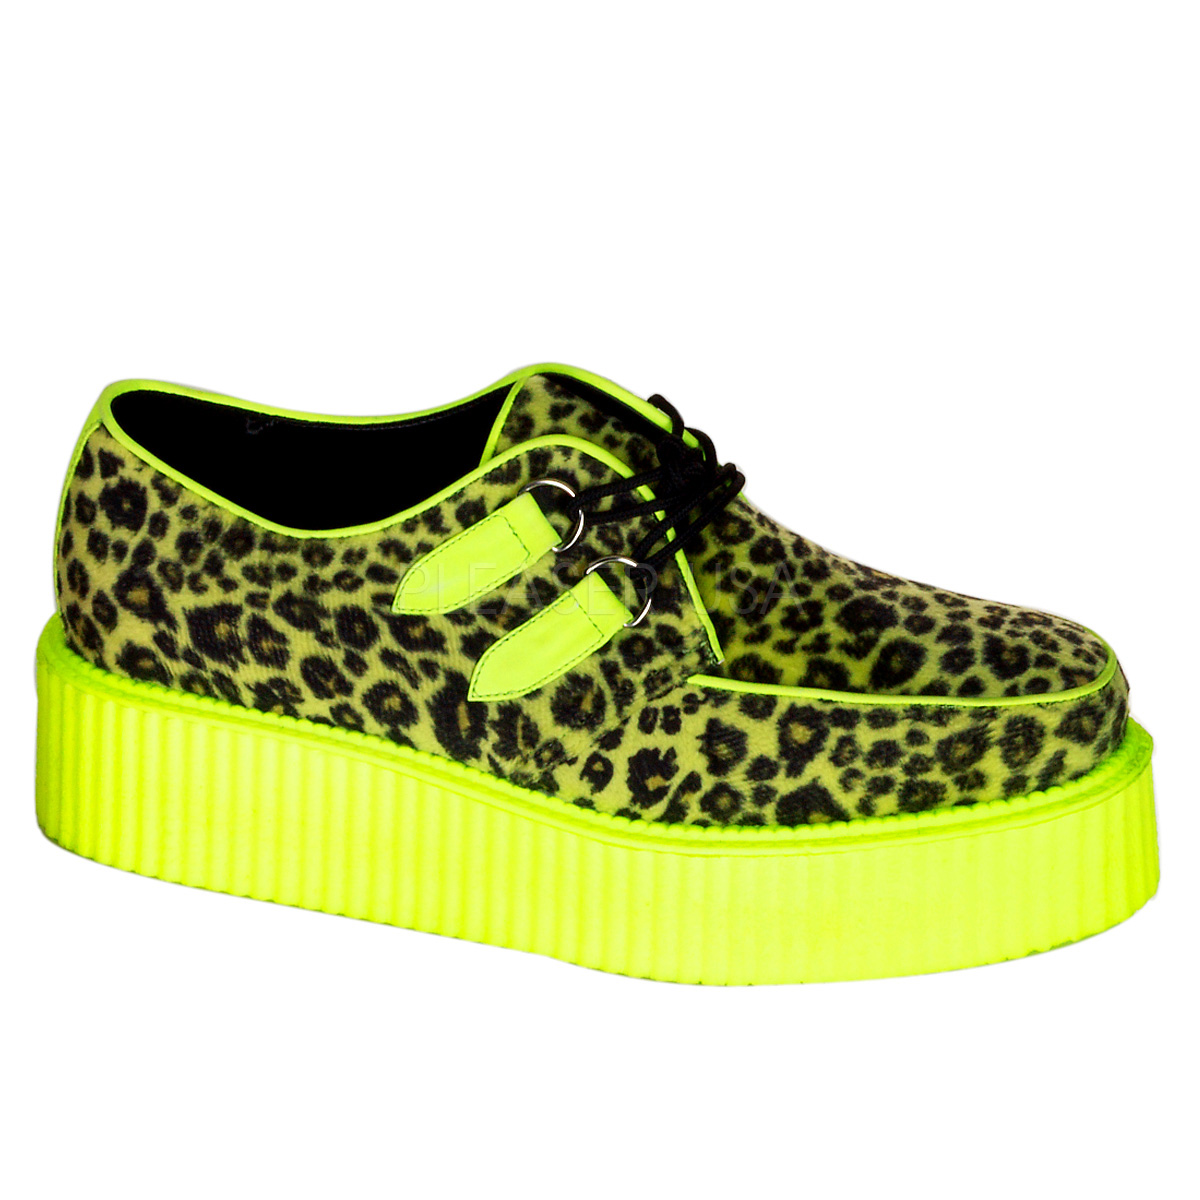 V-creeper-507UV, 2''  UV Veggie Creeper Shoes